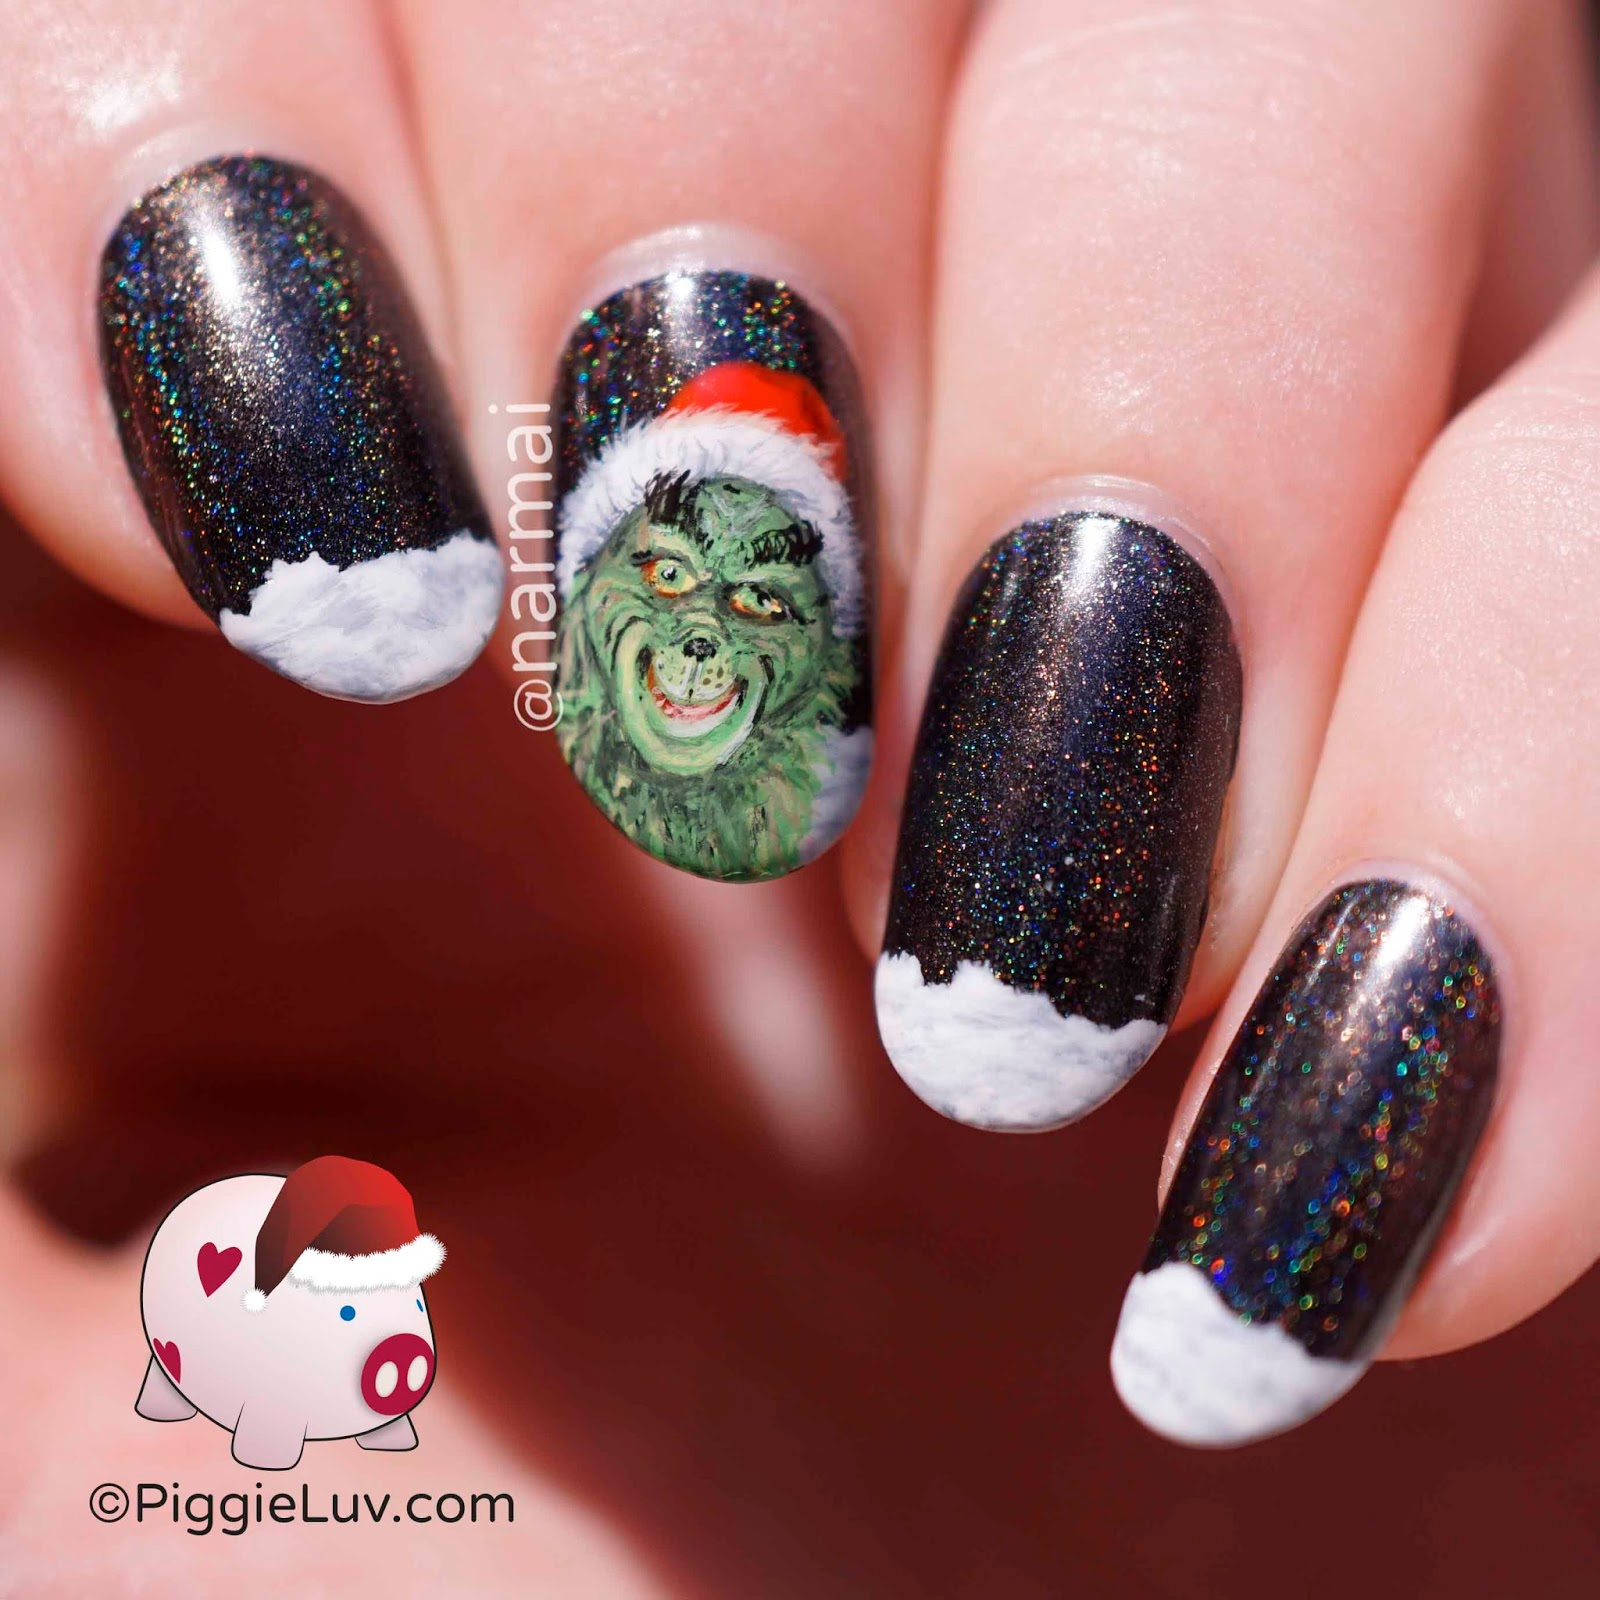 Piggieluv Freehand The Grinch Nail Art For Christmas